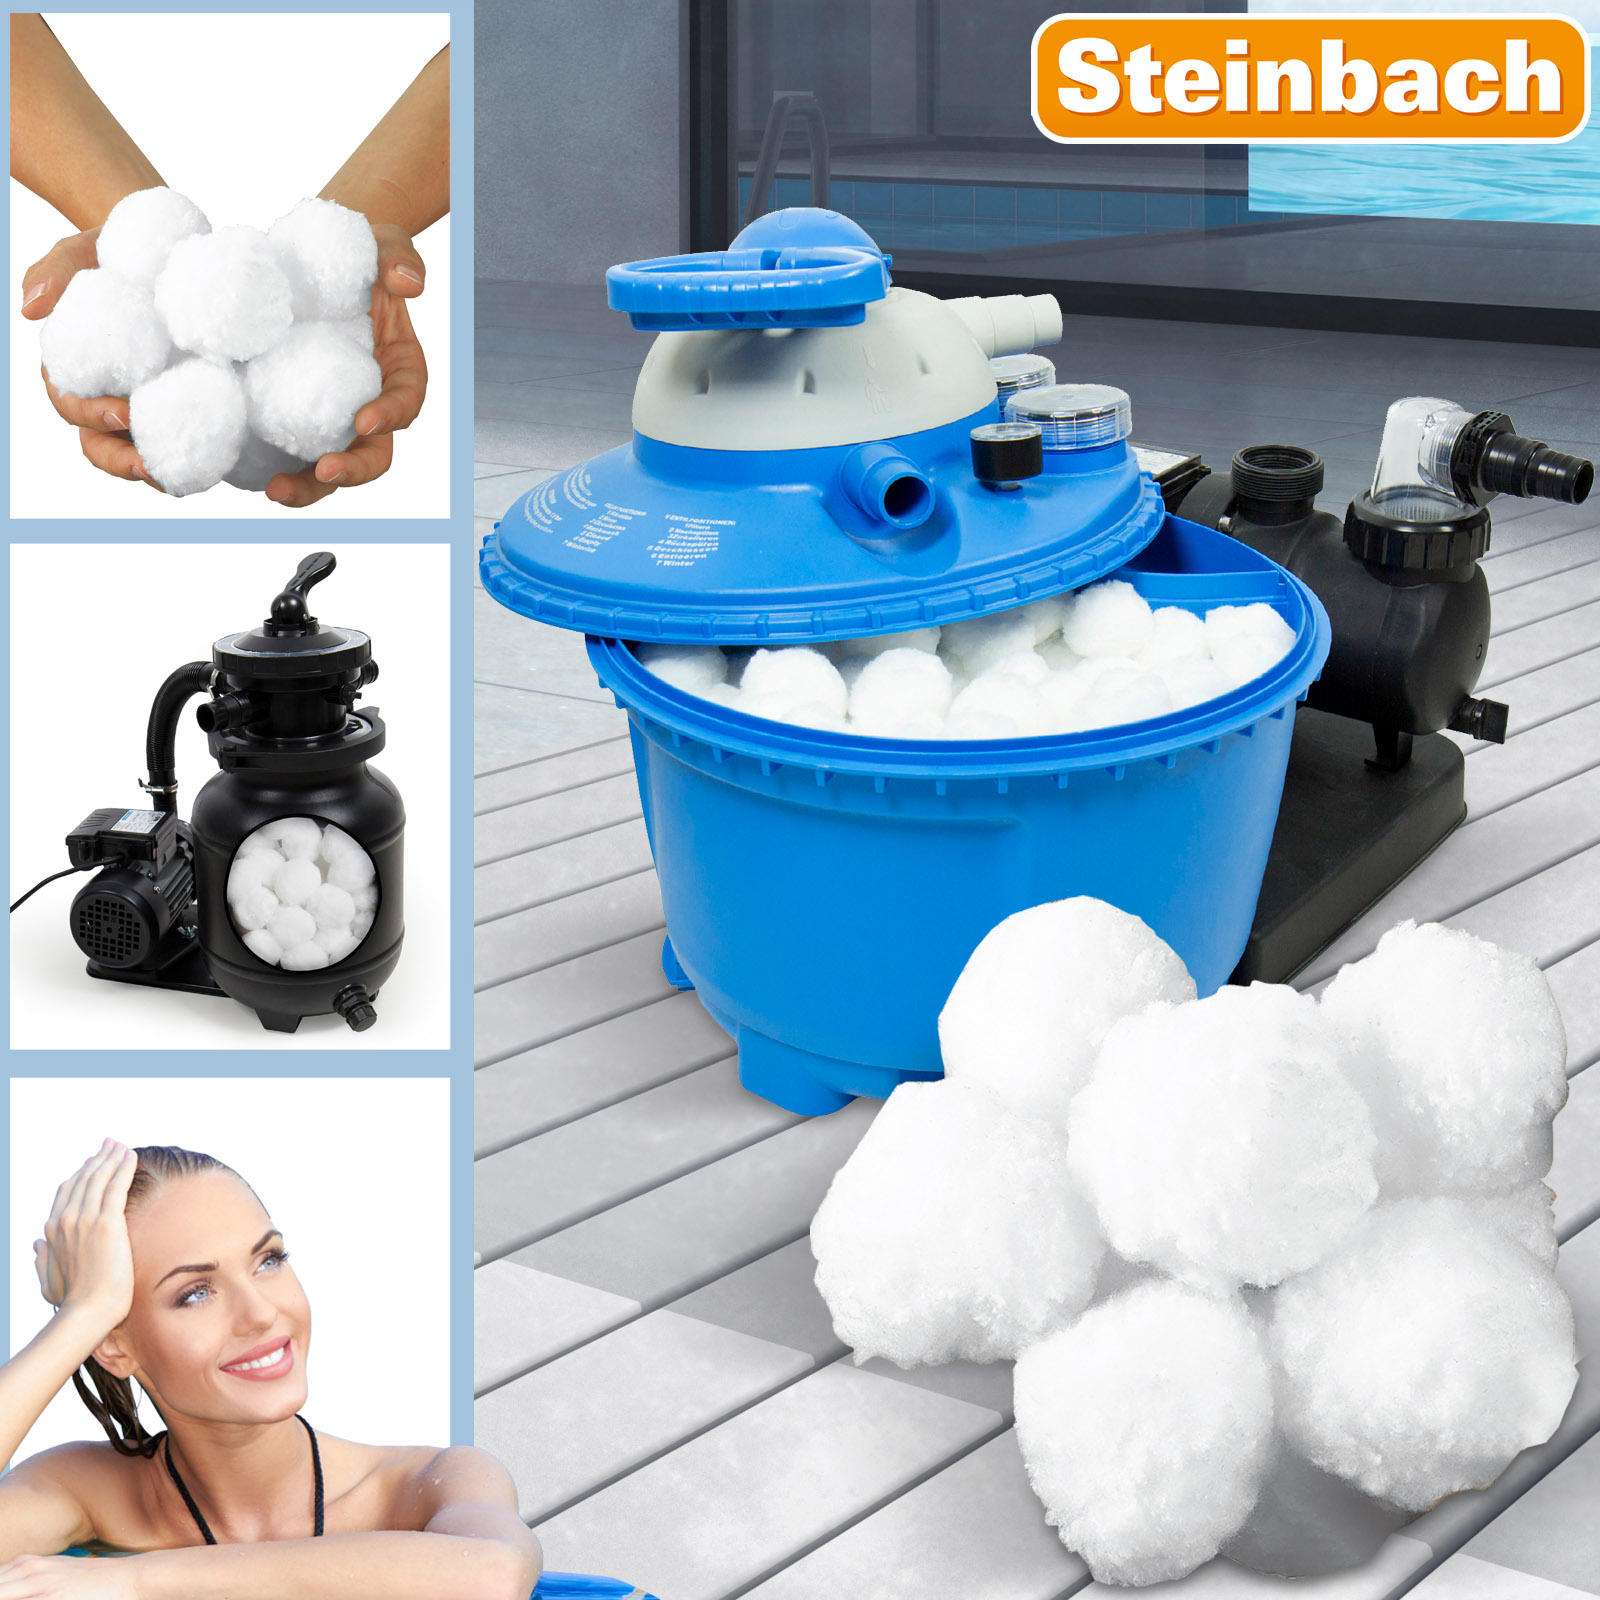 Filter balls 700g for sandfilter alternative to 25 kg sand - Pool filter reinigen ...